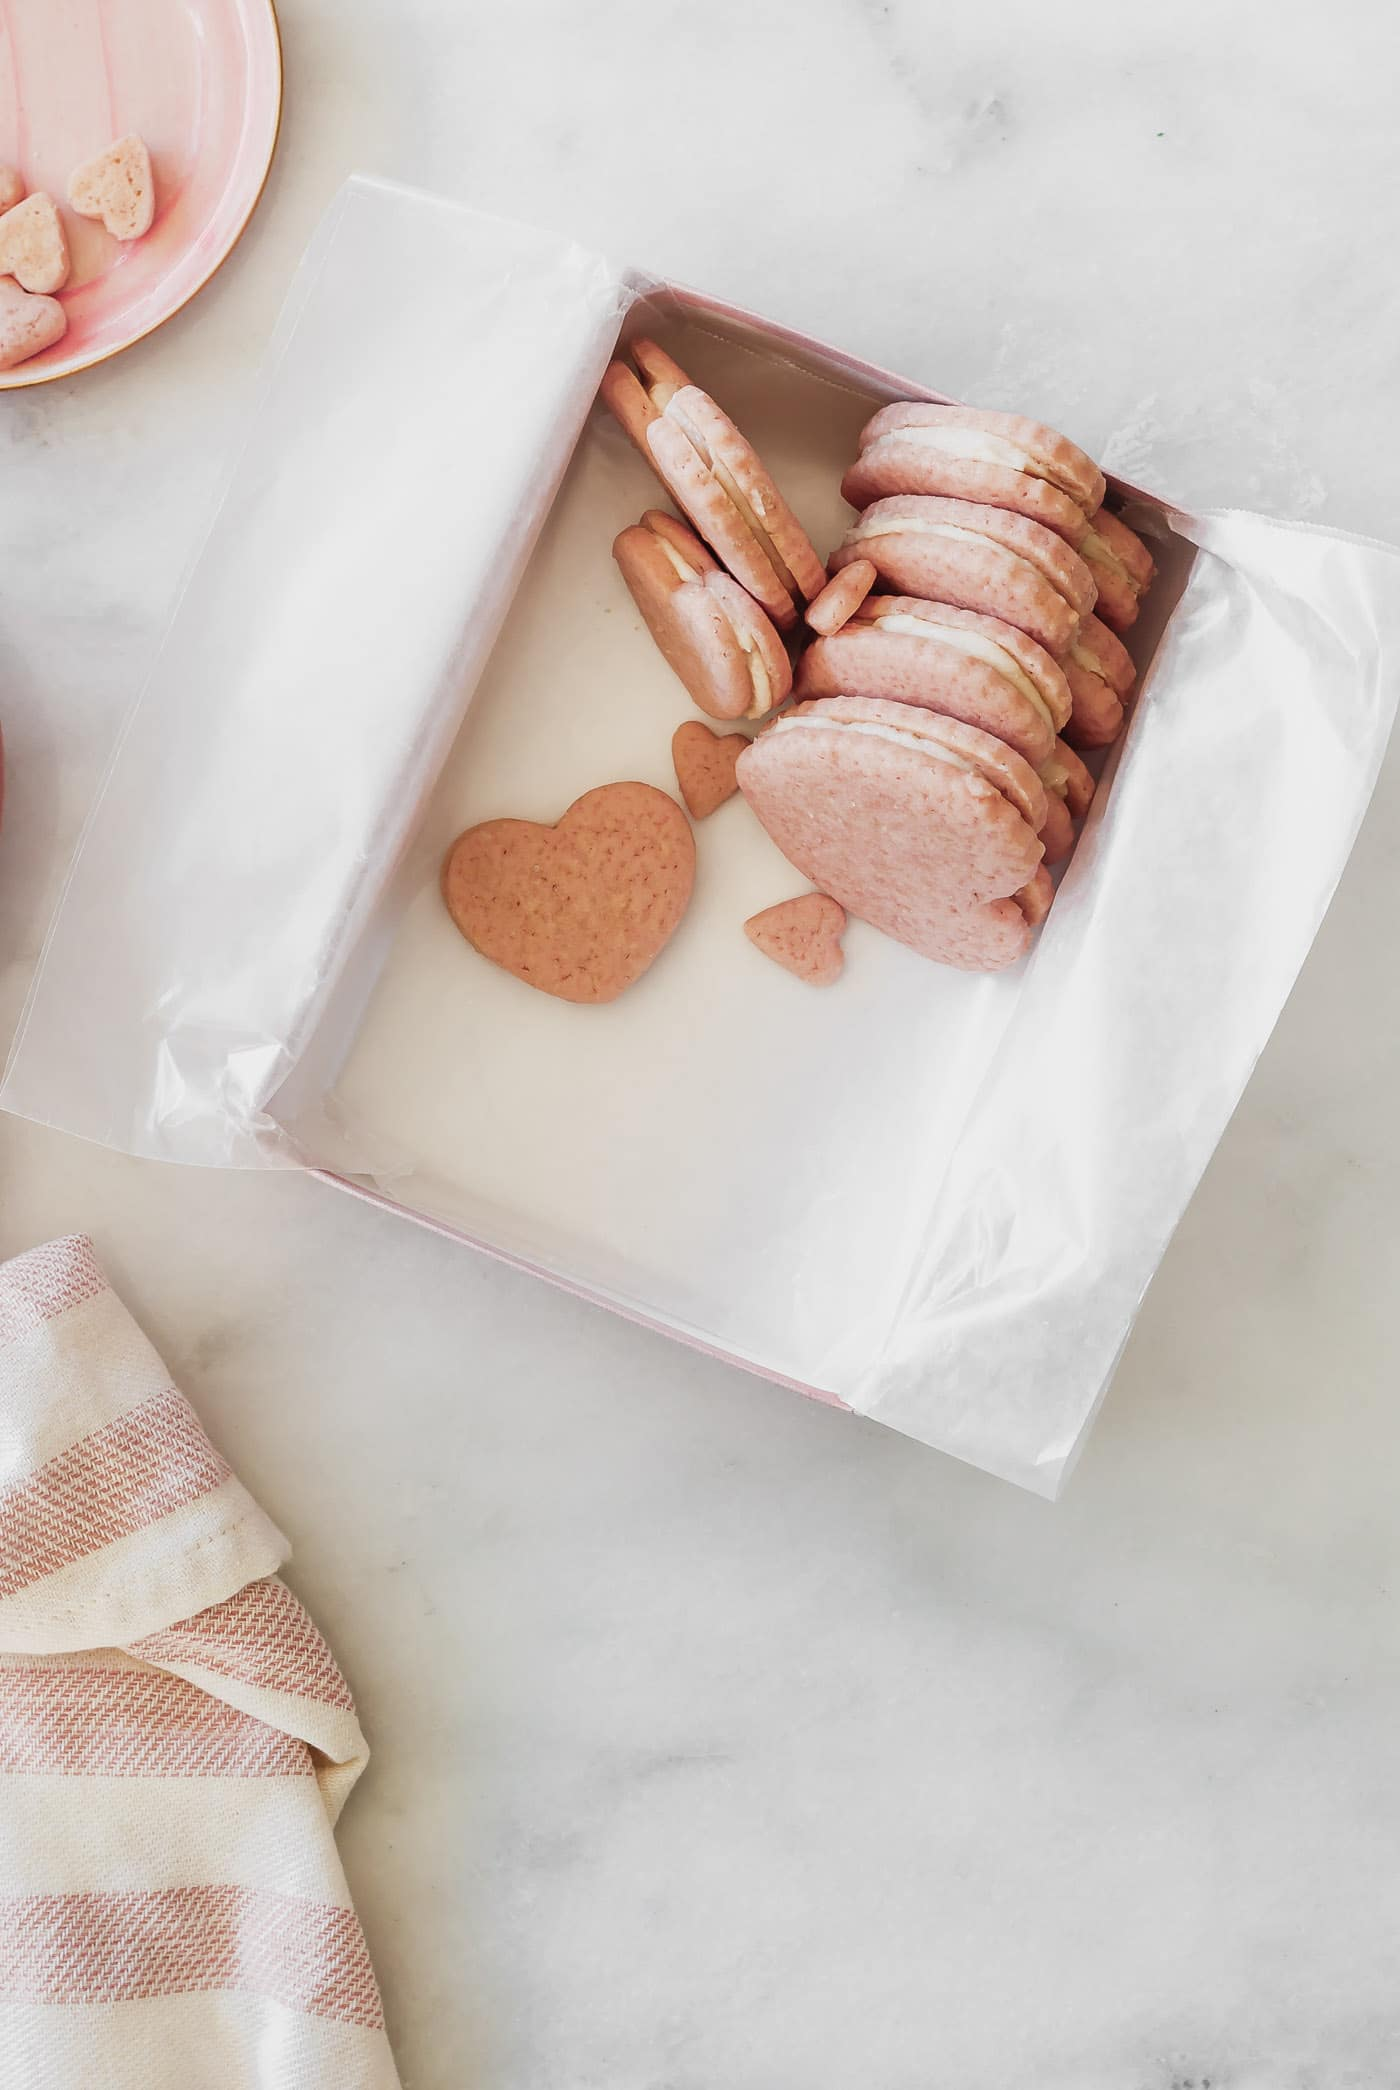 Heart Shaped Sandwich Cookies in a pink box